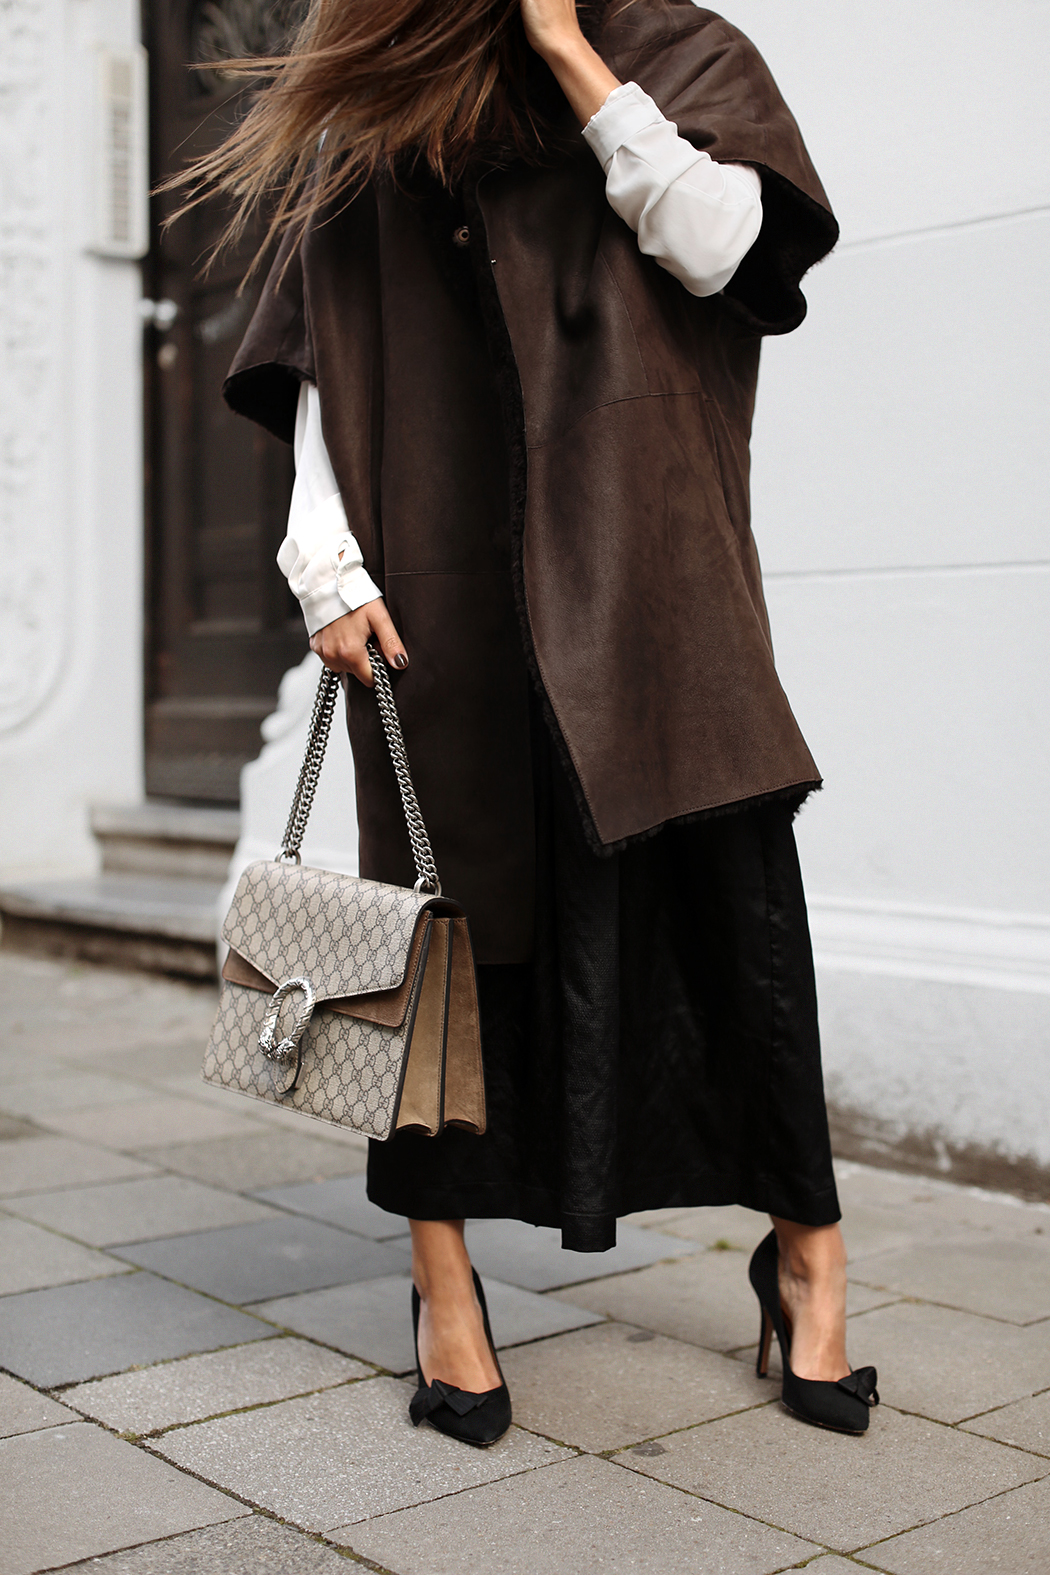 The Dashing Rider Leather Coat Gucci Bag Look